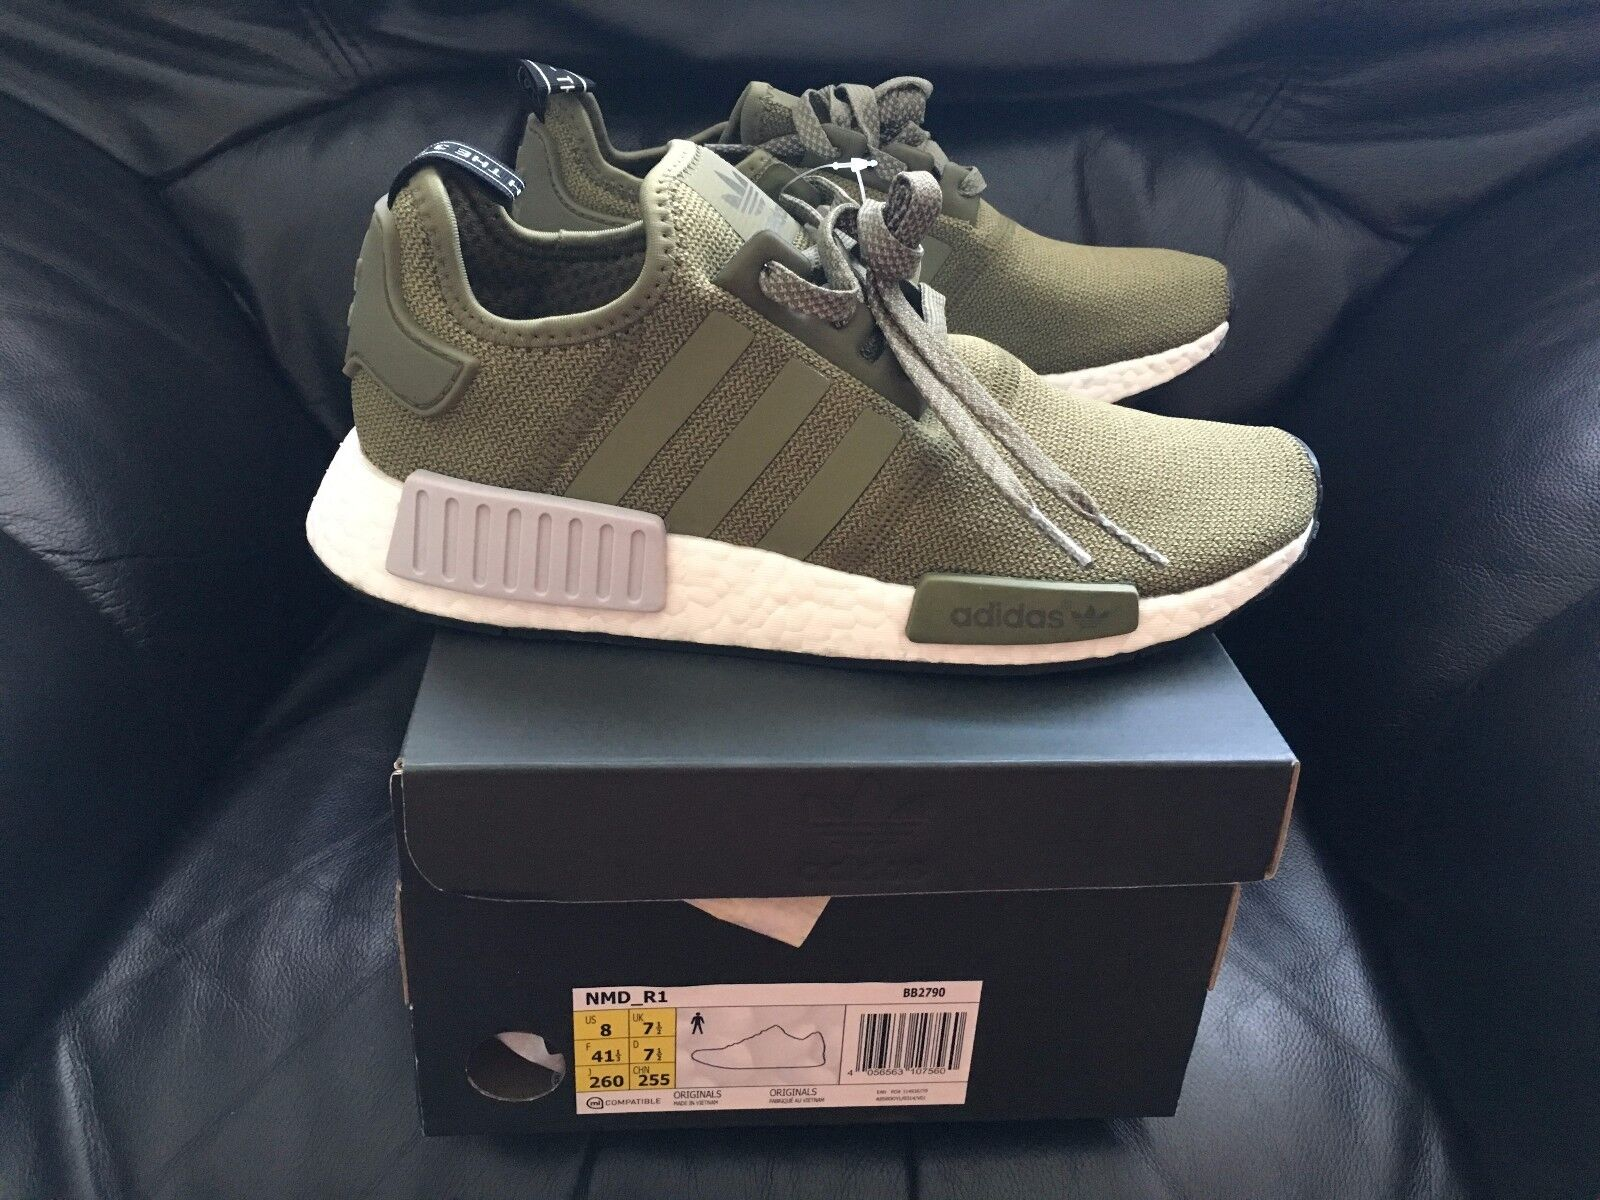 ADIDAS NMD R1 R1 R1 RUNNER OLIVE CARGO GREEN KHAKI FOOTLOCKER SIZES 6 7 8 9 10 11 12 7c7c9c